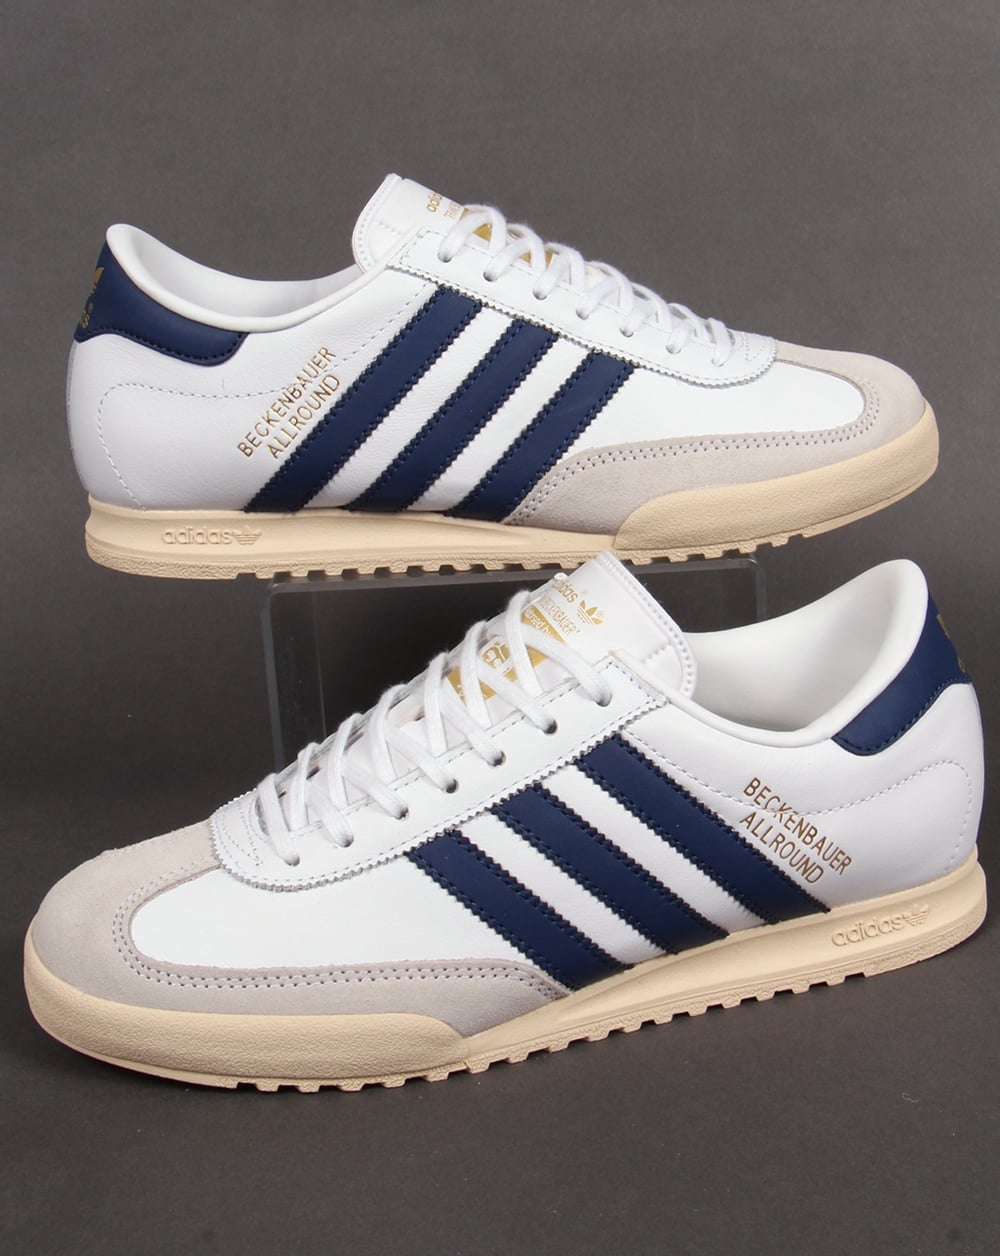 Adidas Uk White Shoes